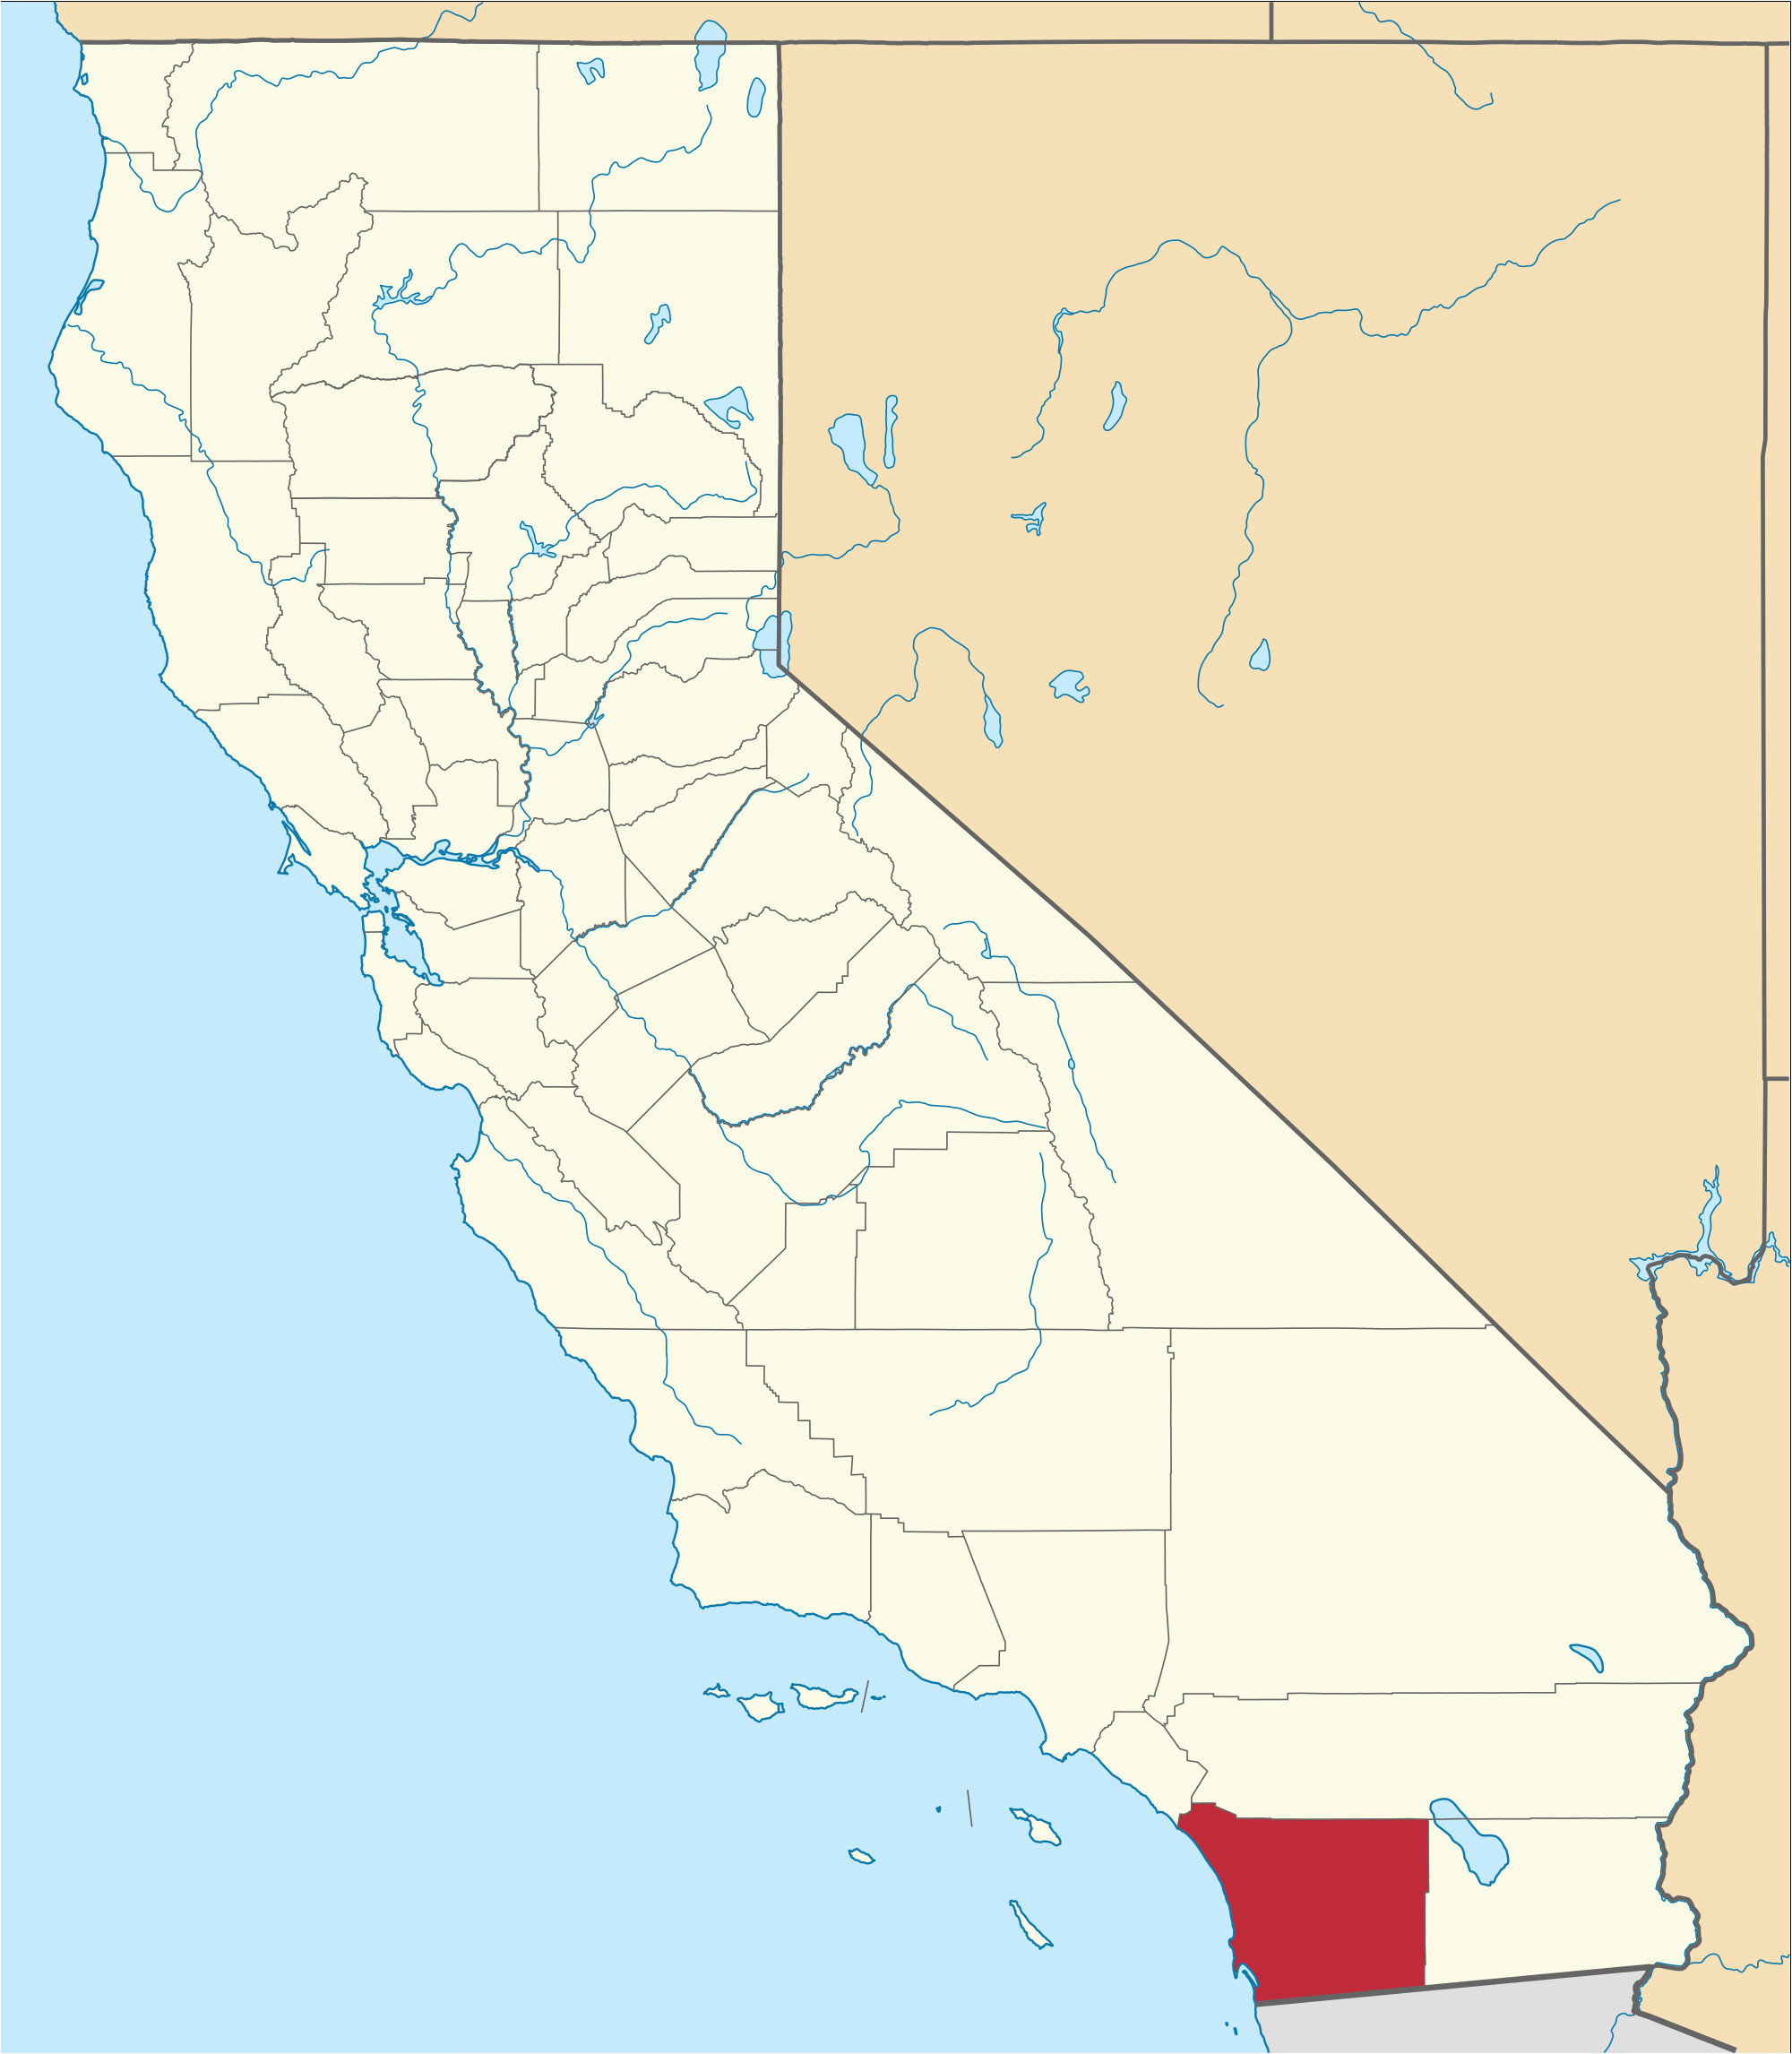 san joaquin valley on us map new san diego county california